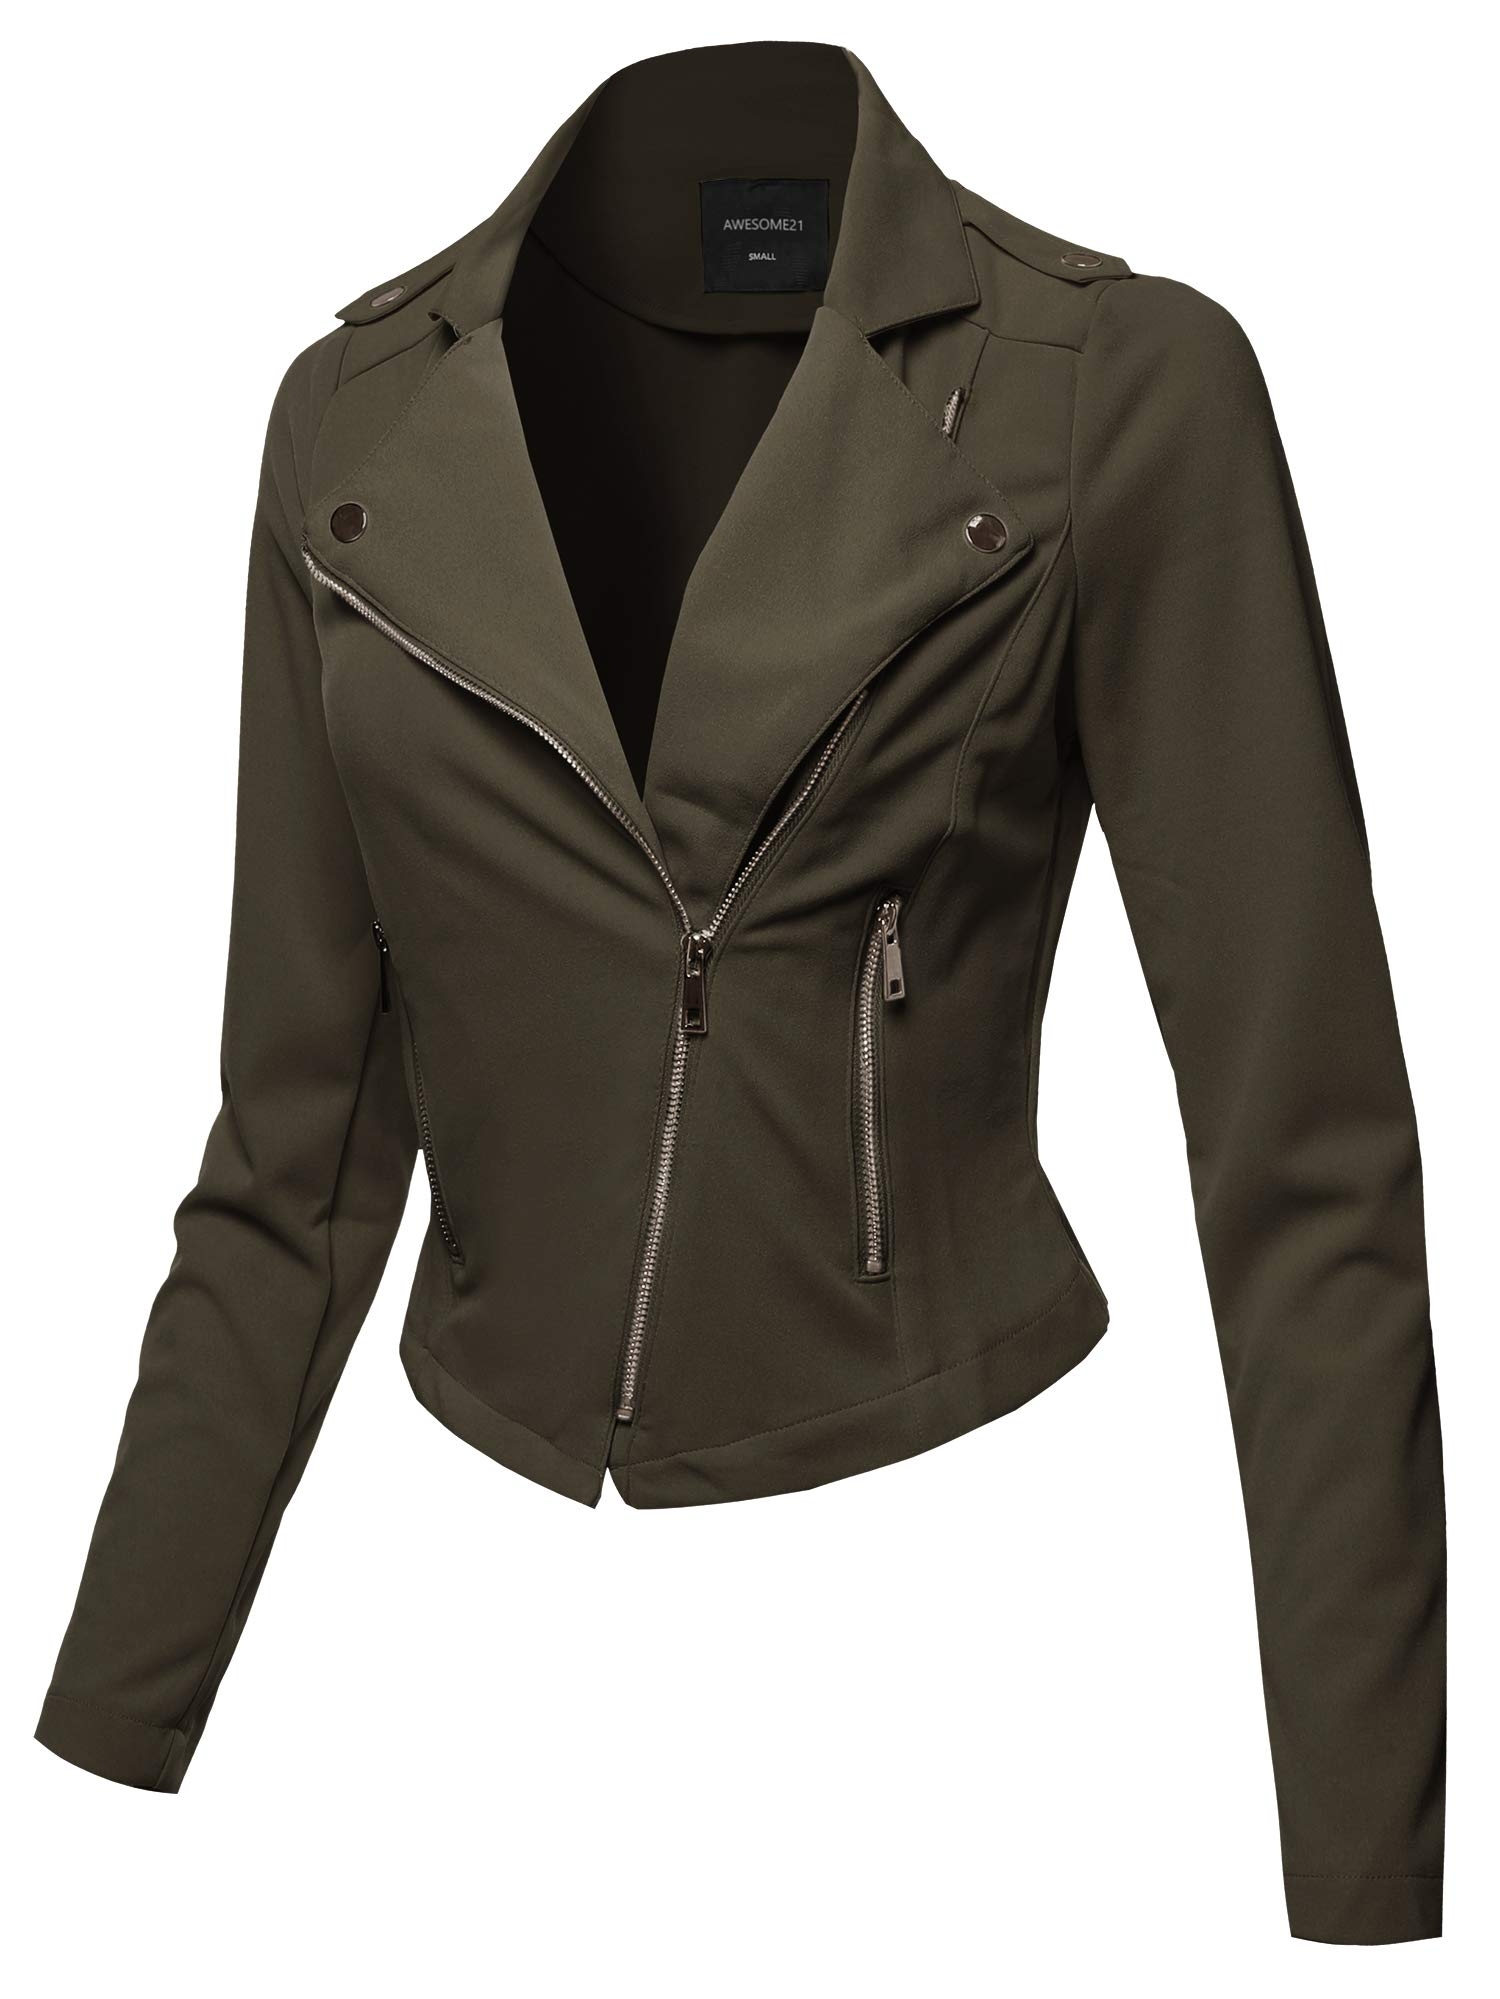 Awesome21 Solid Asymmetrical Zipper Closure Long Sleeve Thin Biker Style Jacket Olive L